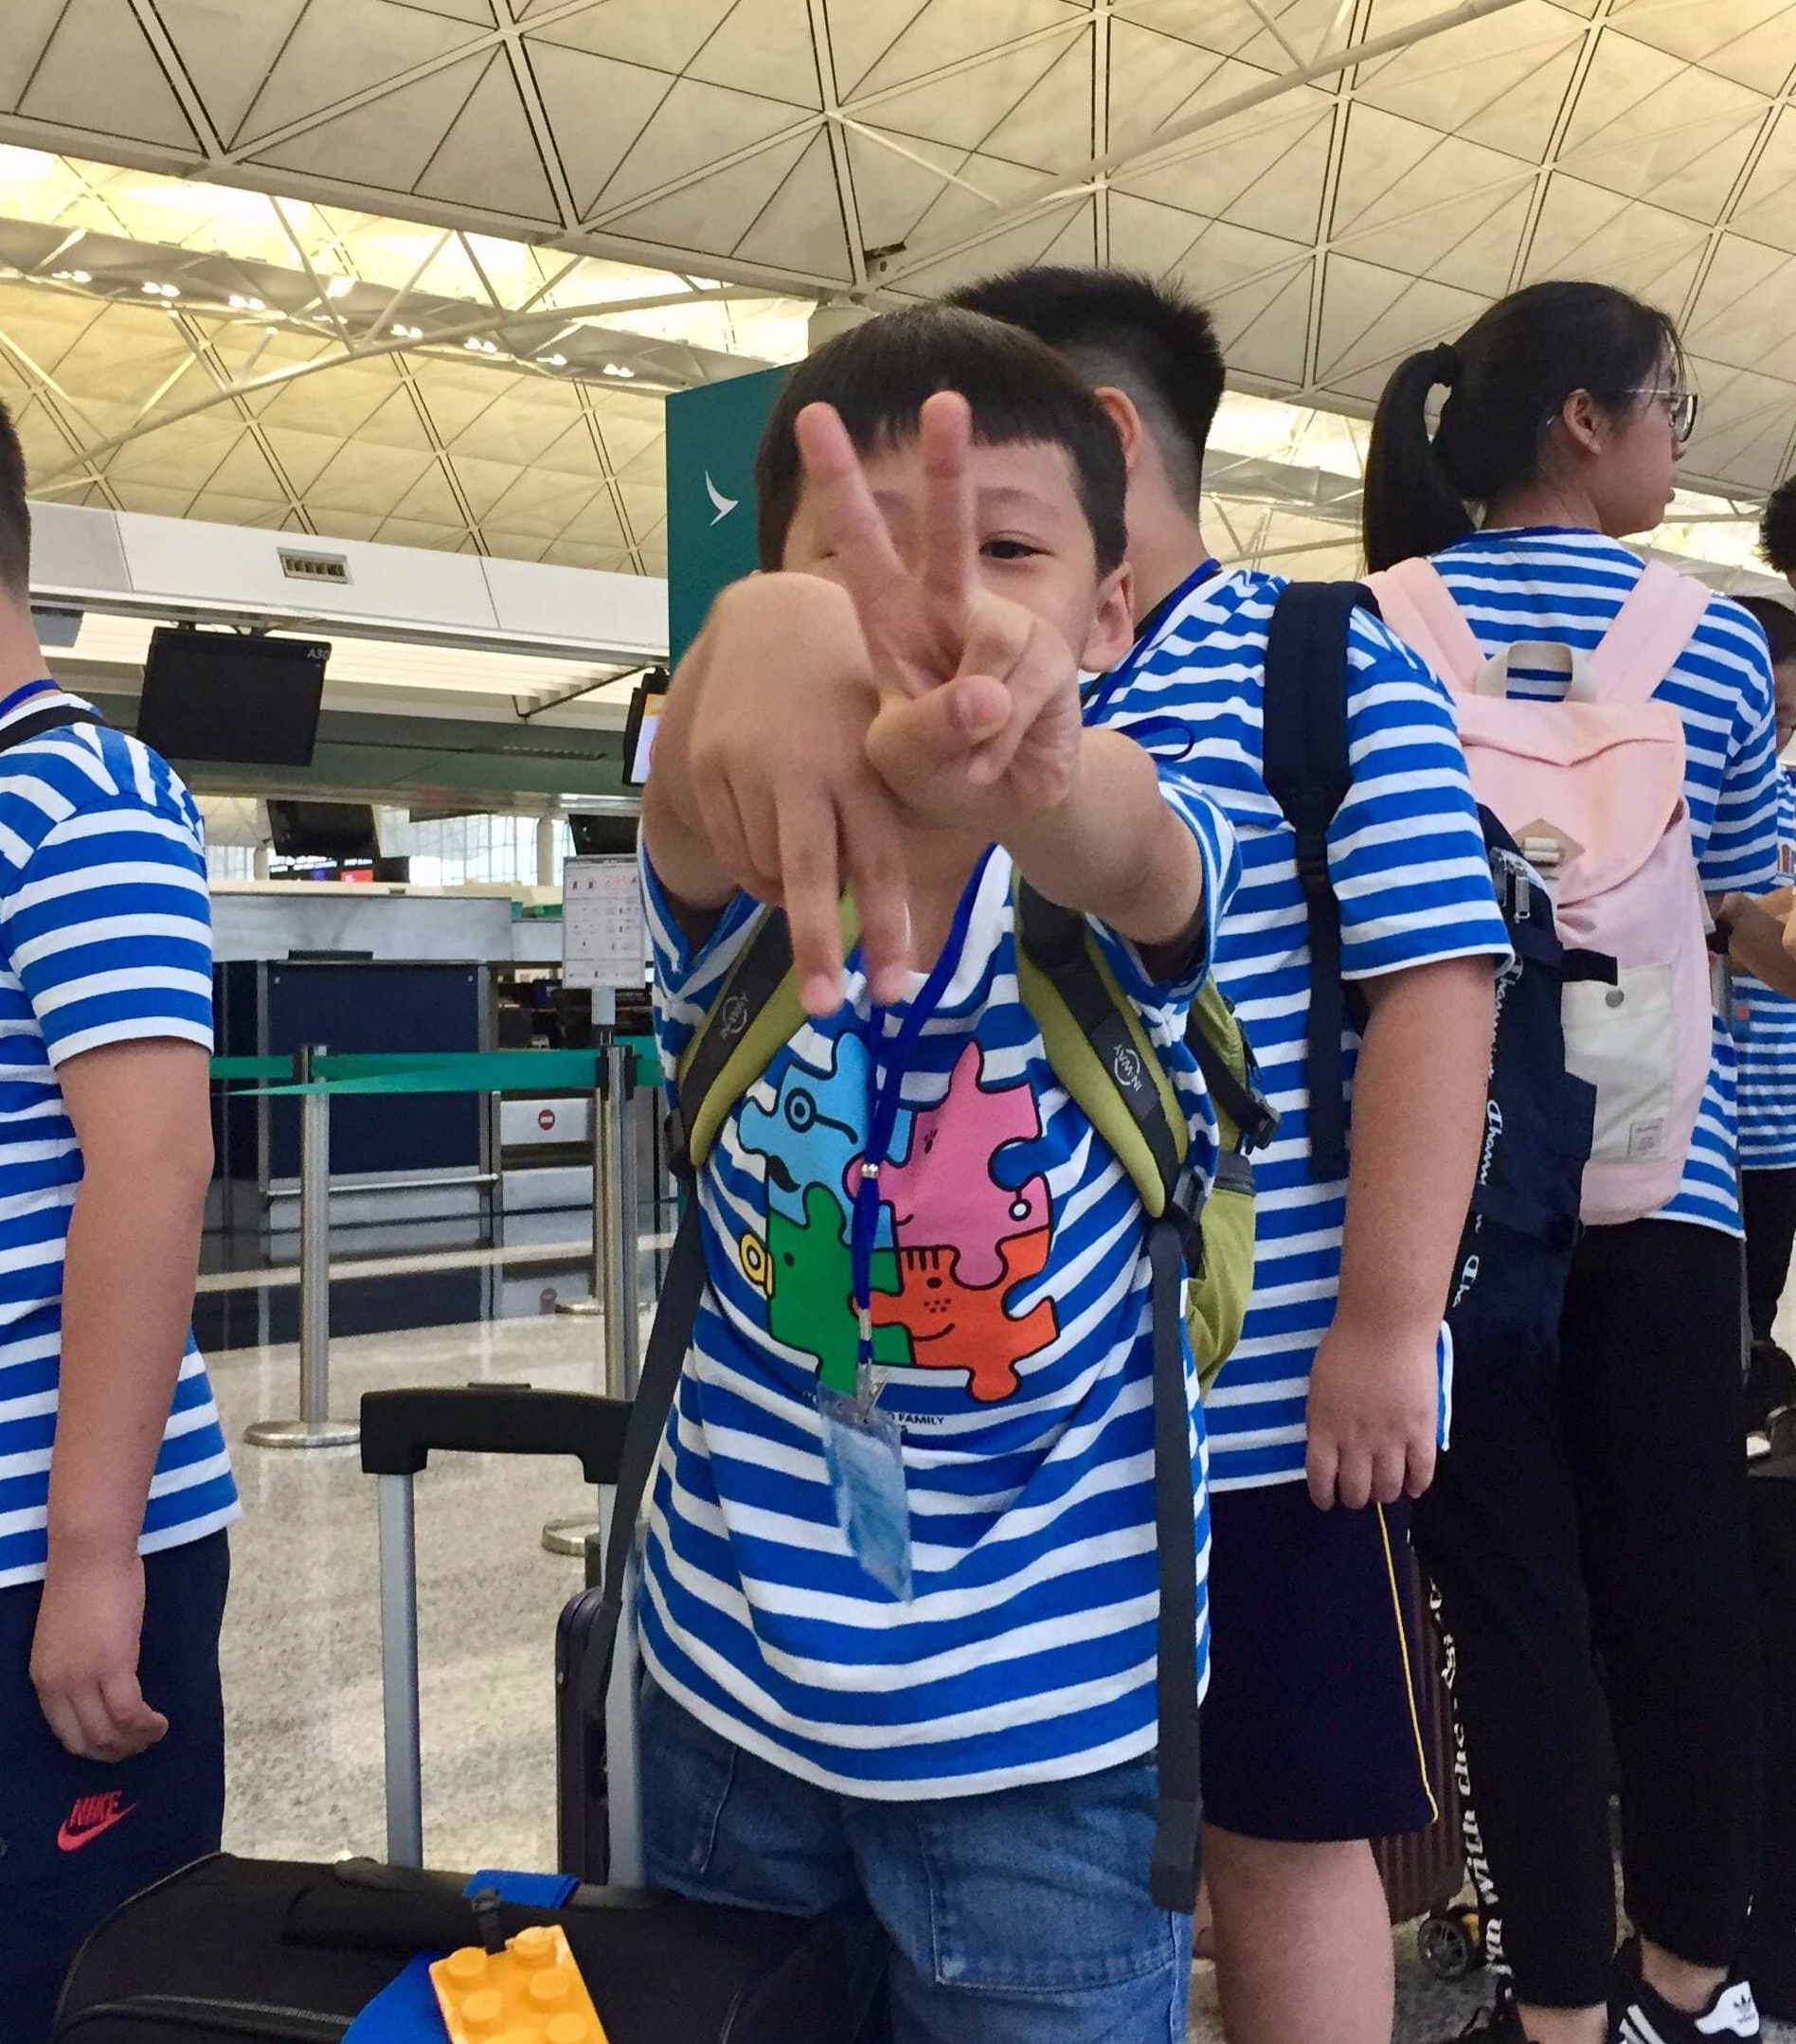 Little boy ready for check-in and baggage drop-off